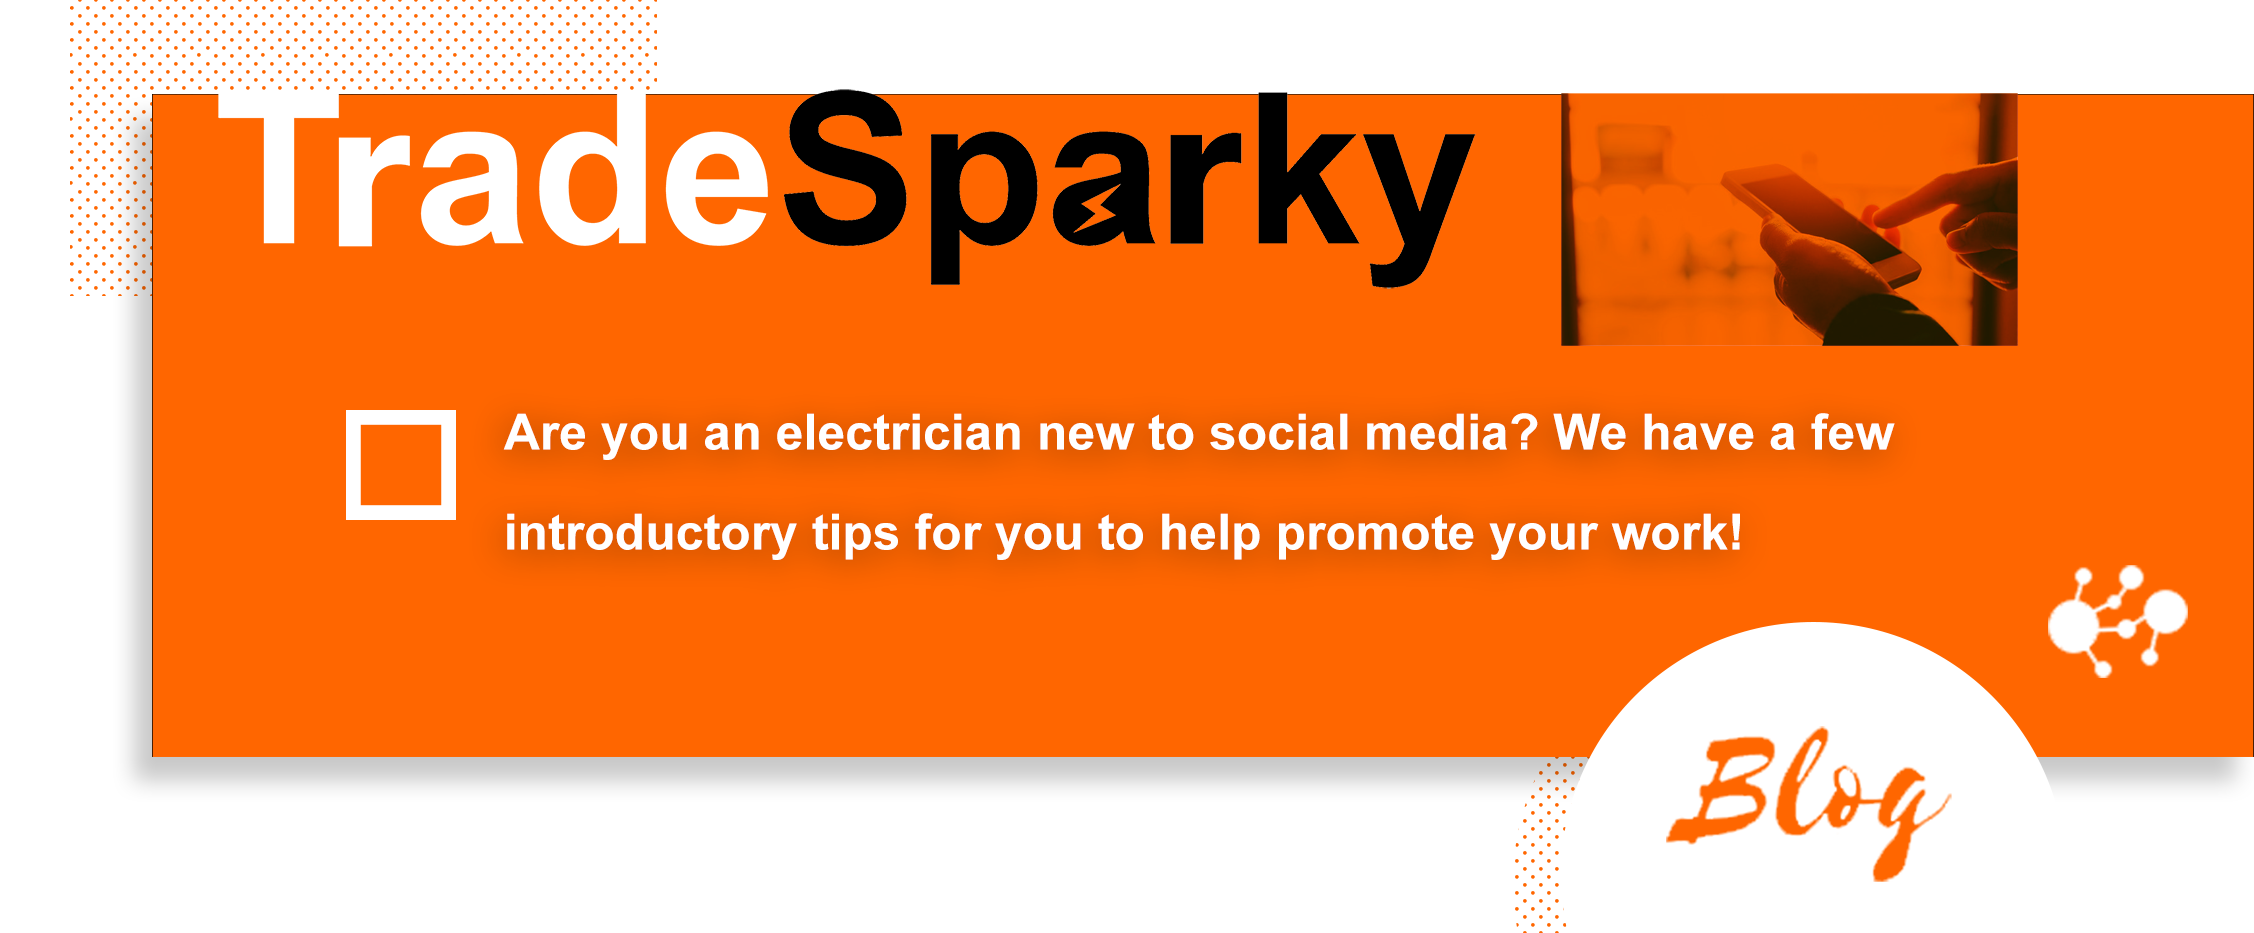 TradeSparky Tips: Our Guide to Getting Started with Social Media for Electricians